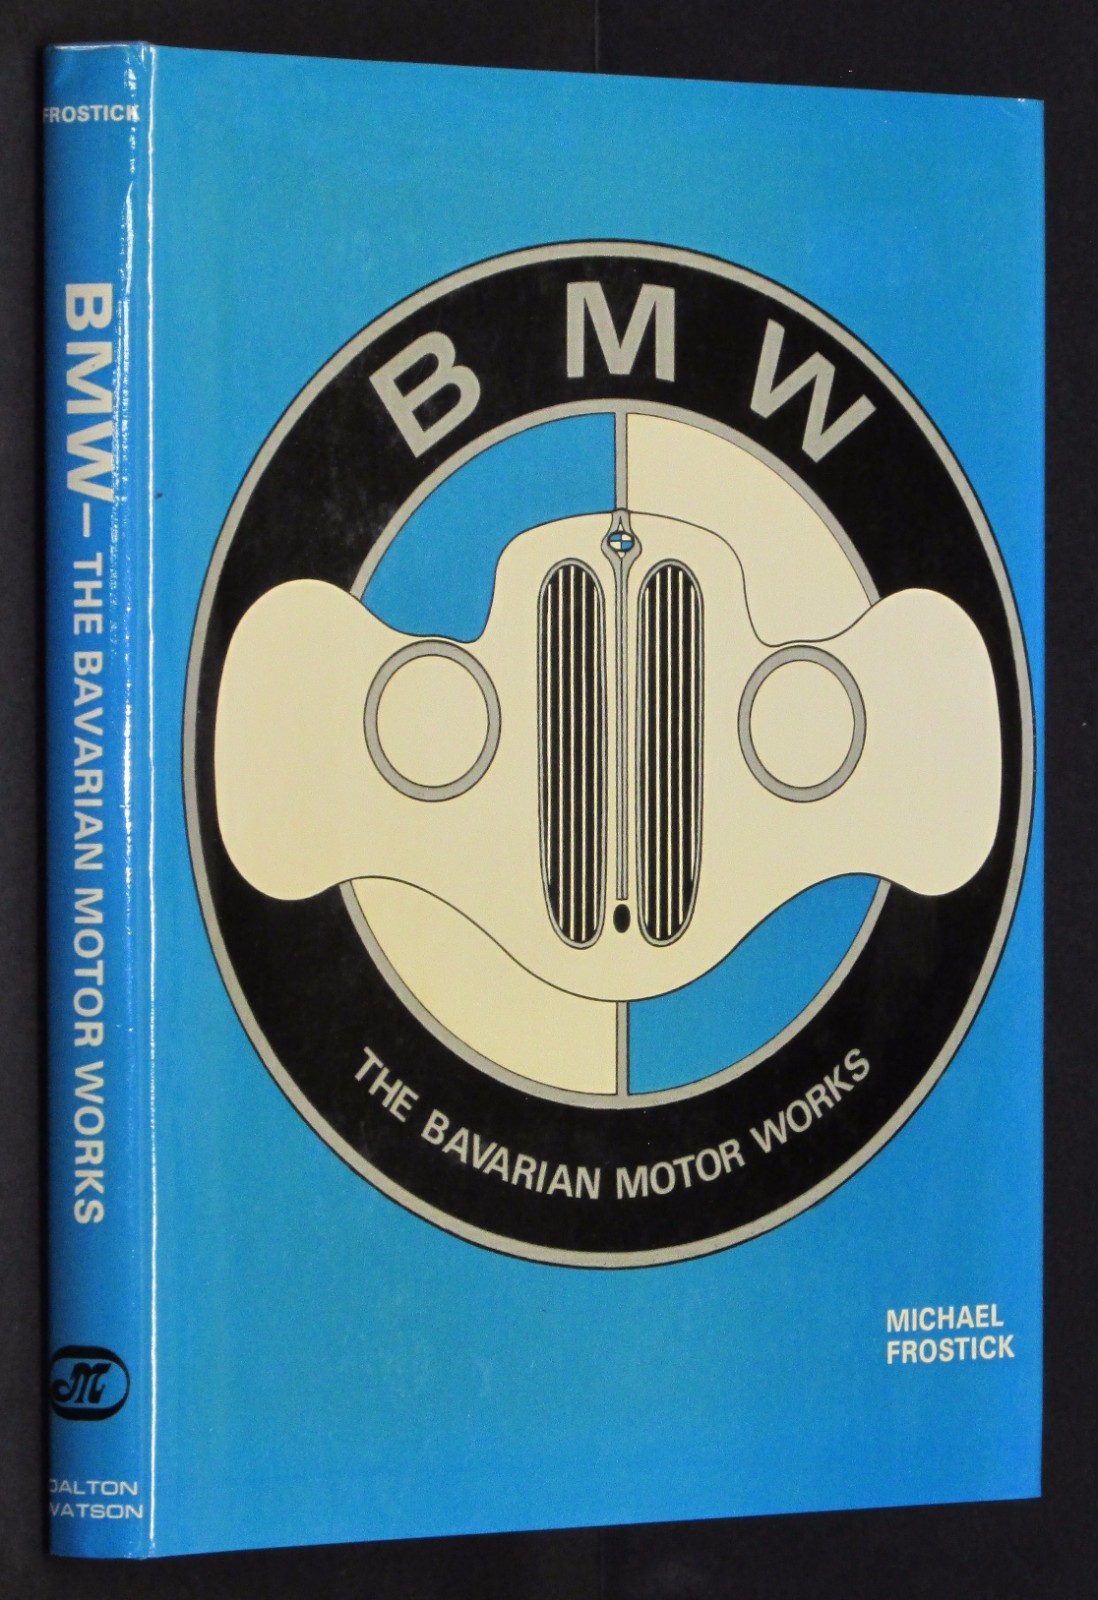 Image for B. M. W.: The Bavarian Motor Works by Frostick, Michael